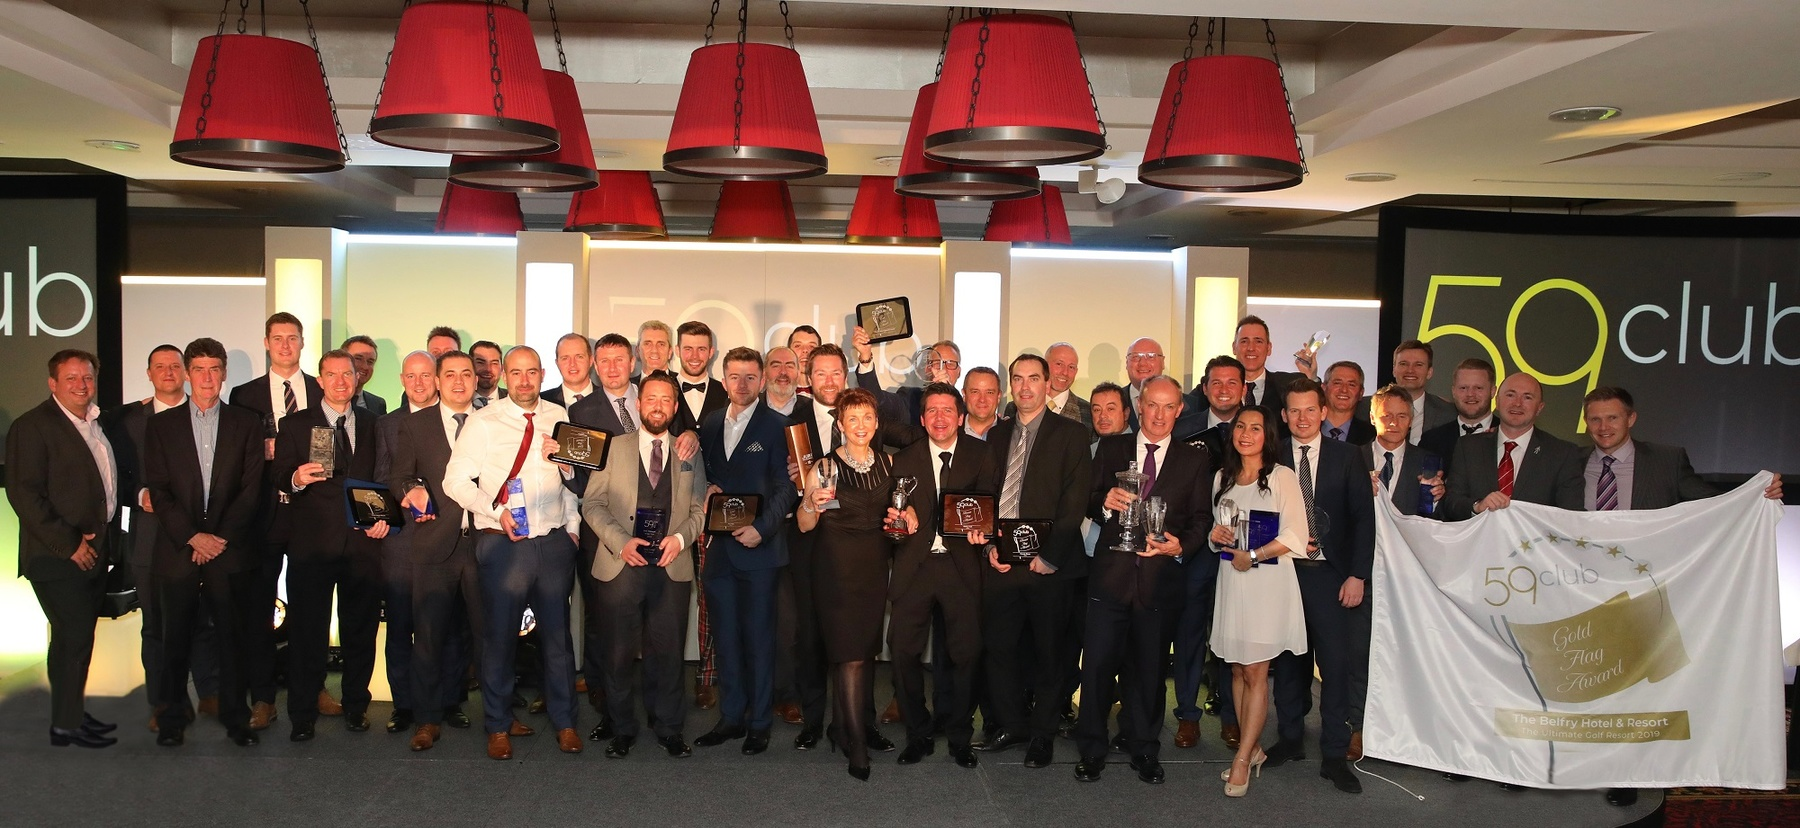 2018 59club Service Excellence Award Winners